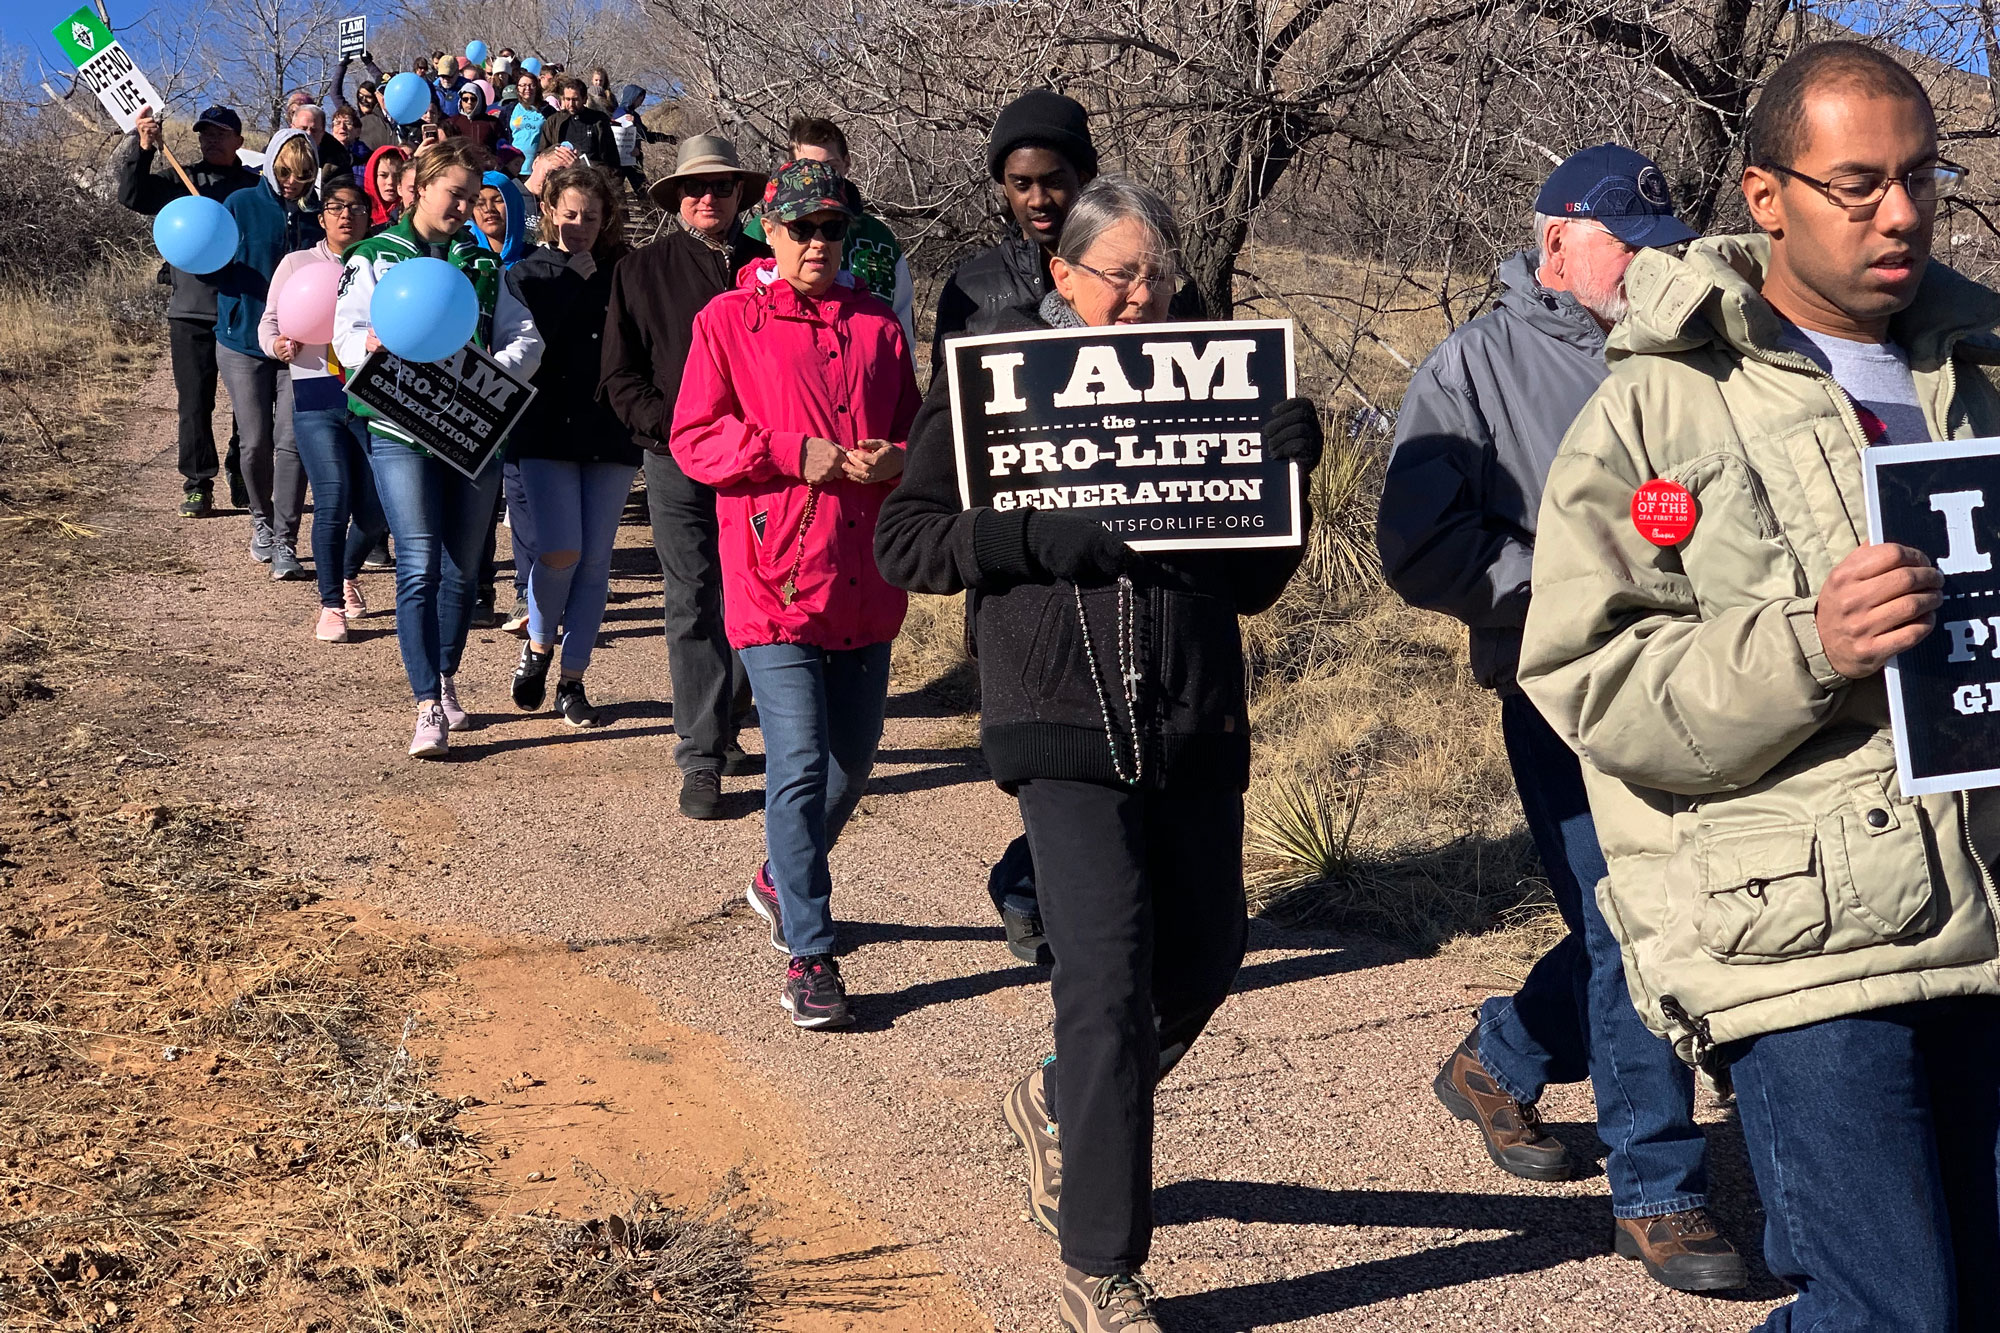 <p>Hundreds of anti-abortion activists hold signs and march in Colorado Springs on Monday, Jan. 21, 2019.</p>